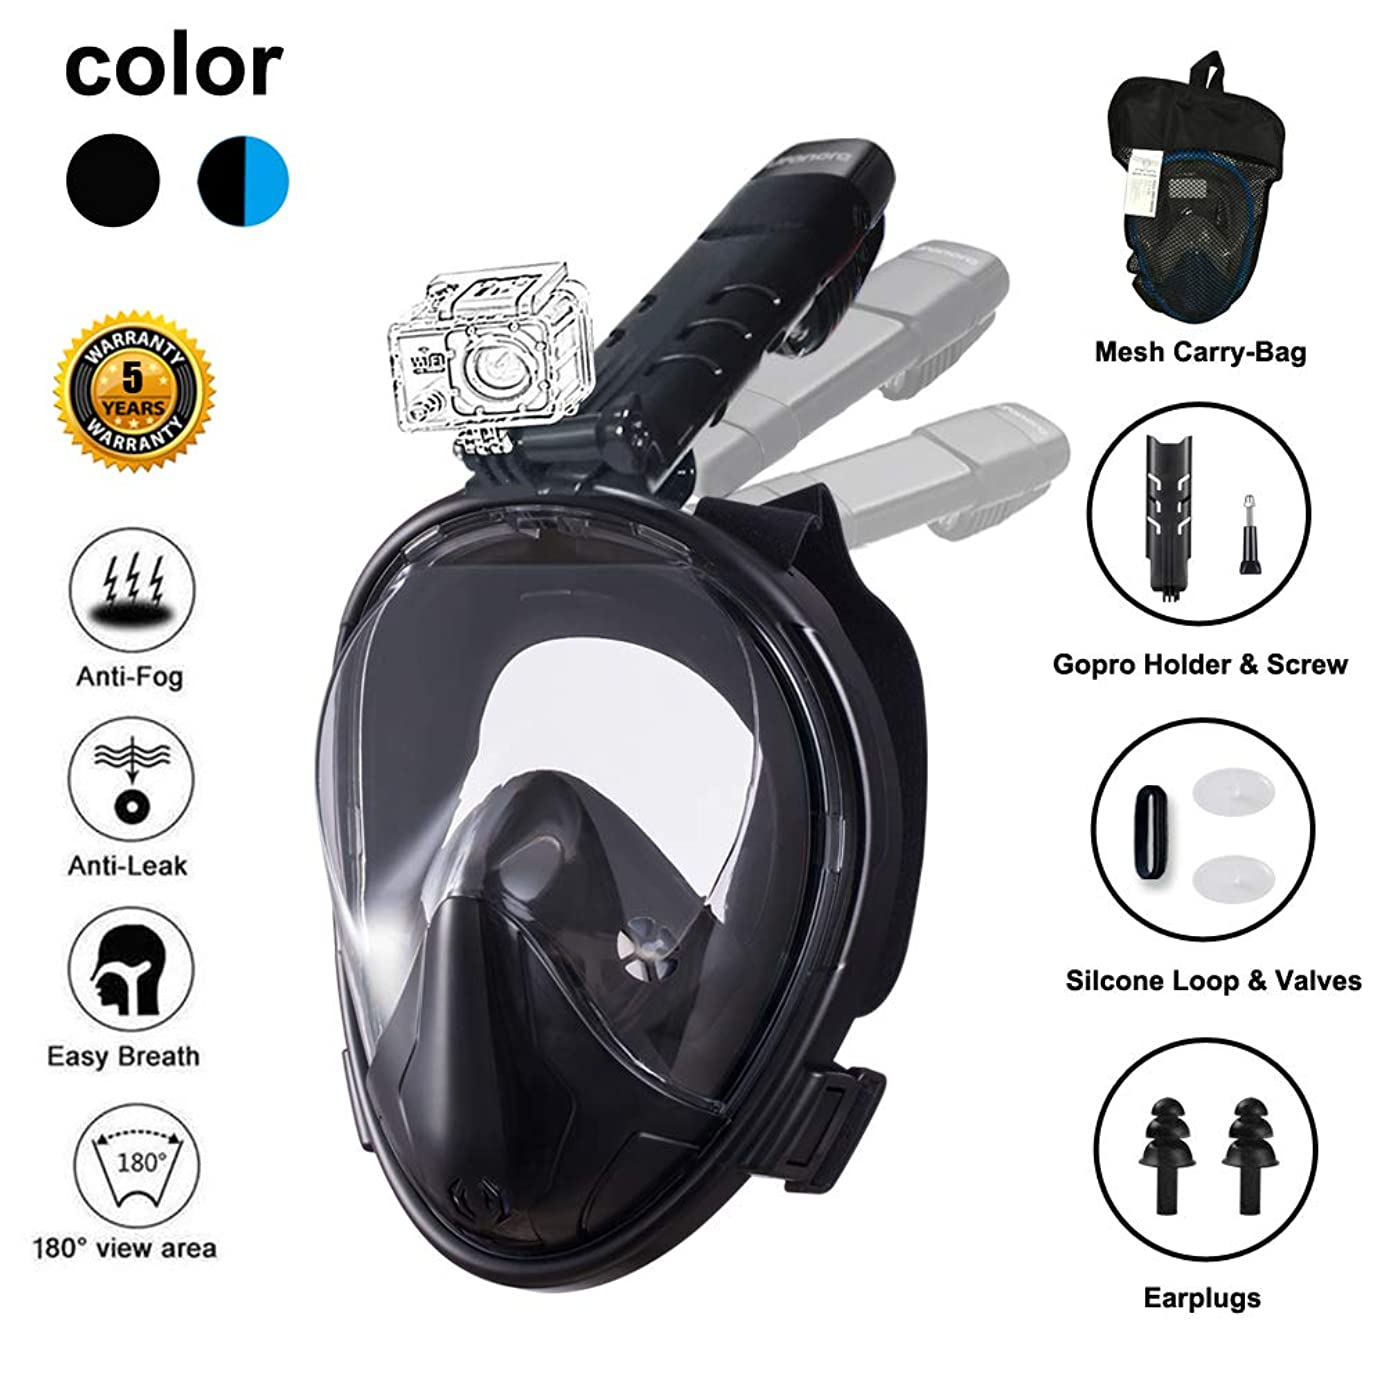 Ufanore Snorkel Mask Full Face, Snorkeling Mask with Detachable?Camera Mount, Foldable 180° Panoramic View, Free Breathing, Anti-Fog and Anti-Leak